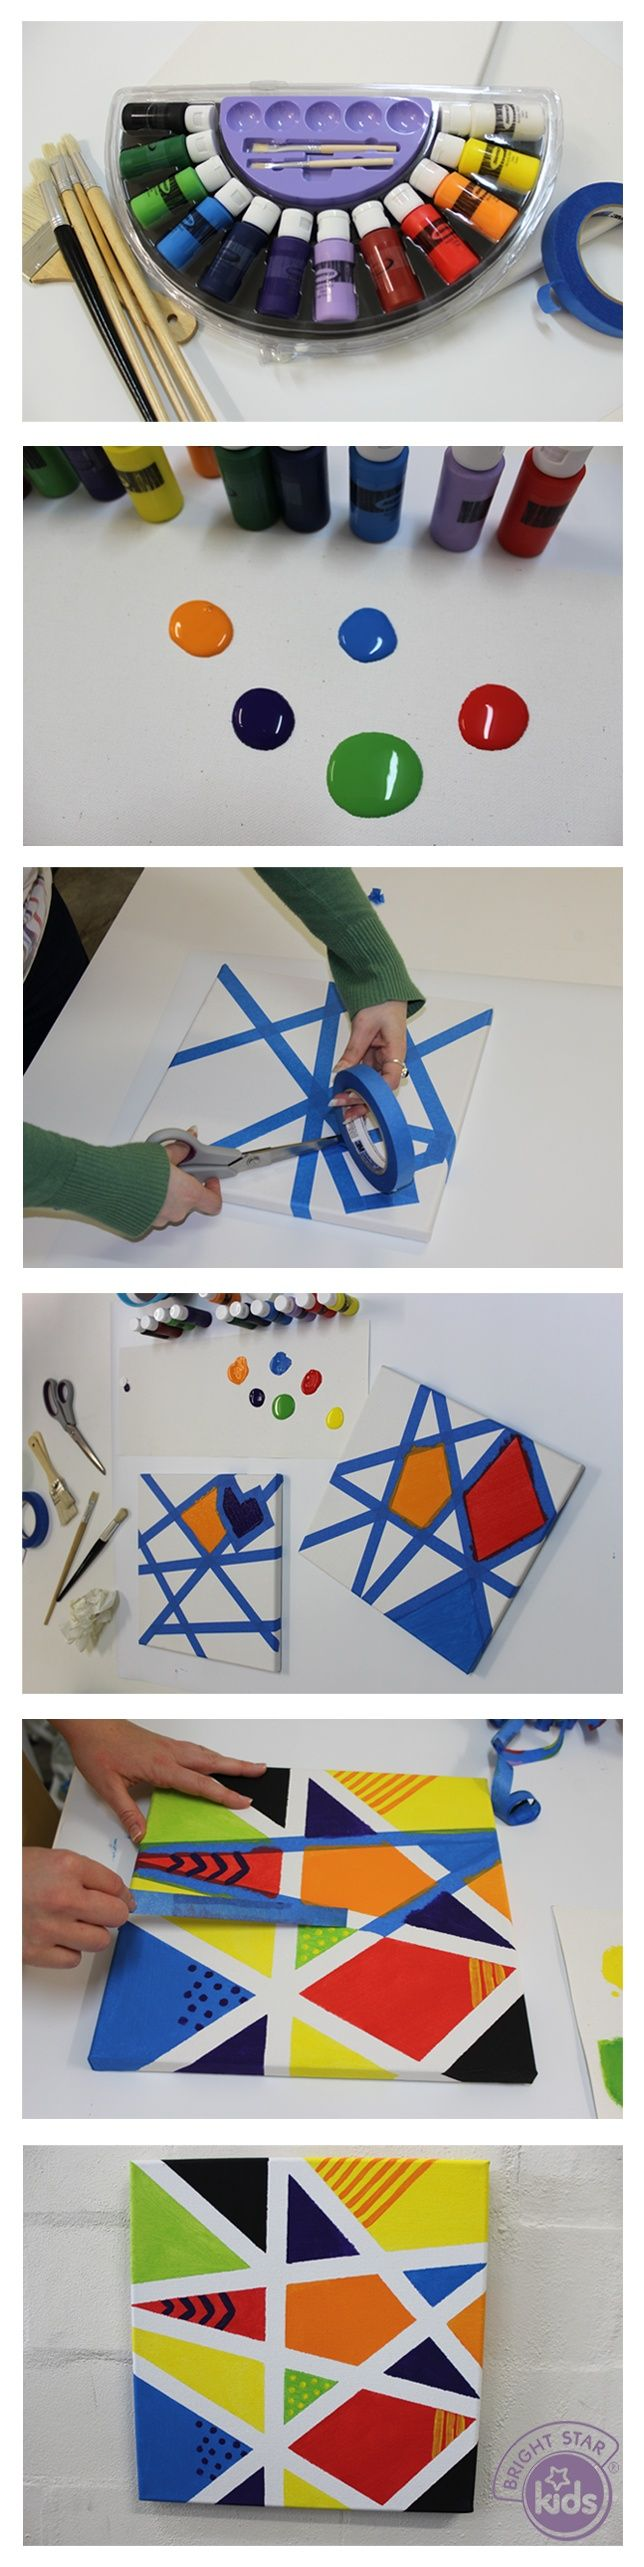 Tape resist painting- a fun project for kids abstract colour